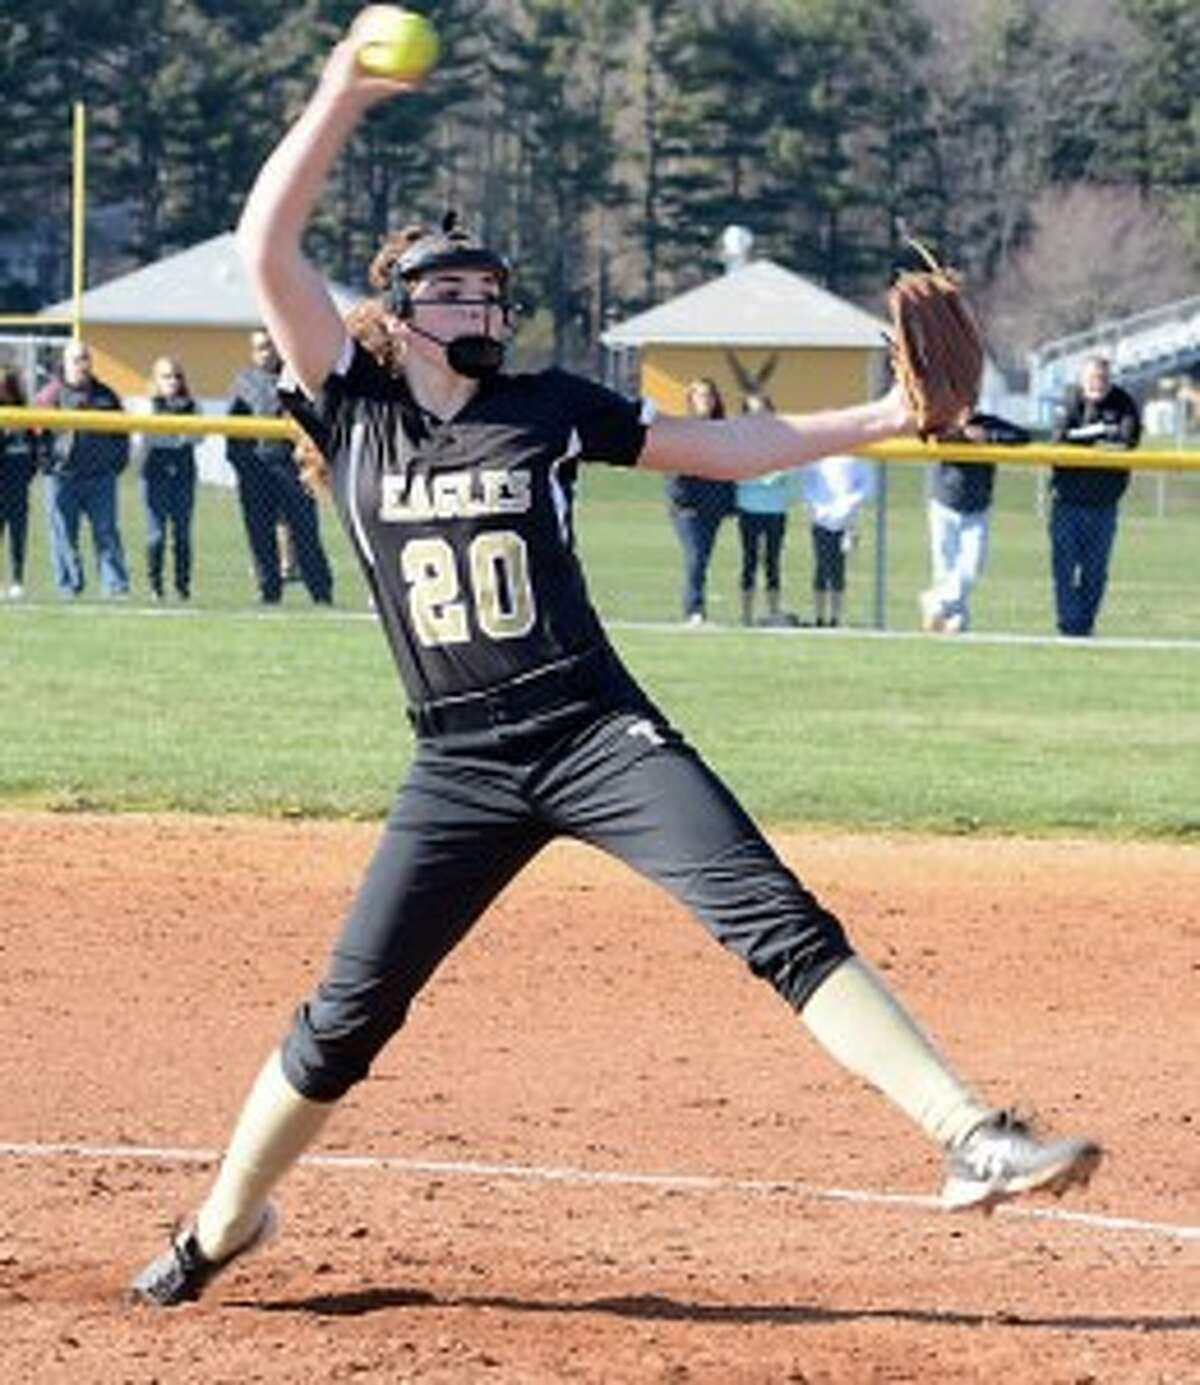 Ally Szabo struck out 12 batters against Warde. - Andy Hutchison photo